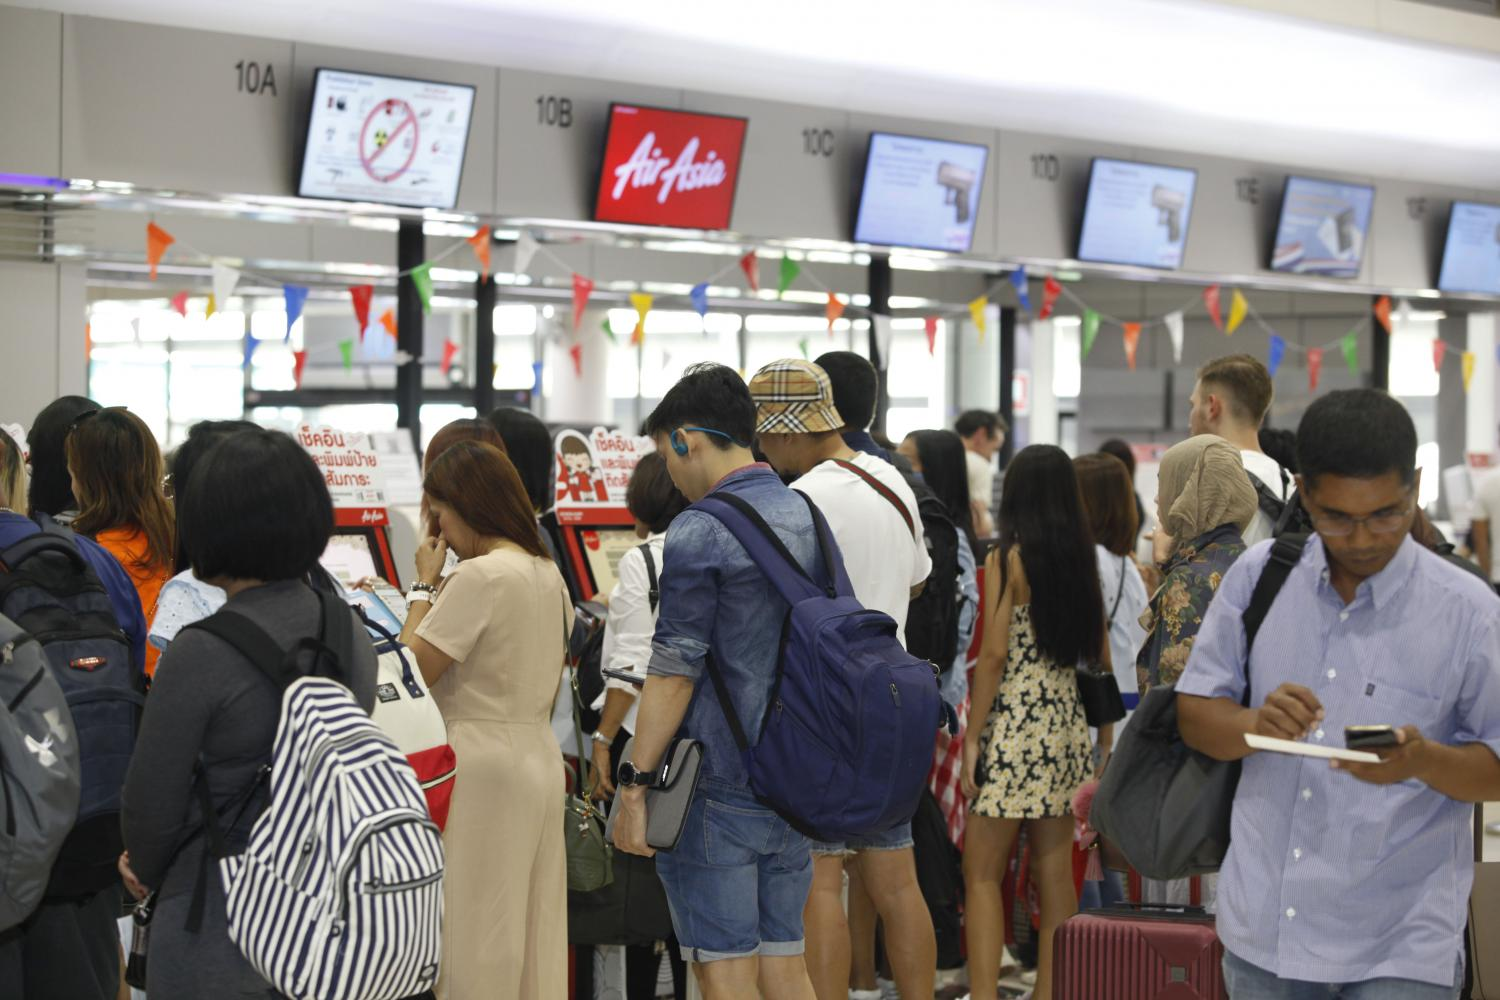 Lower airline ticket prices have prompted more overseas travel.